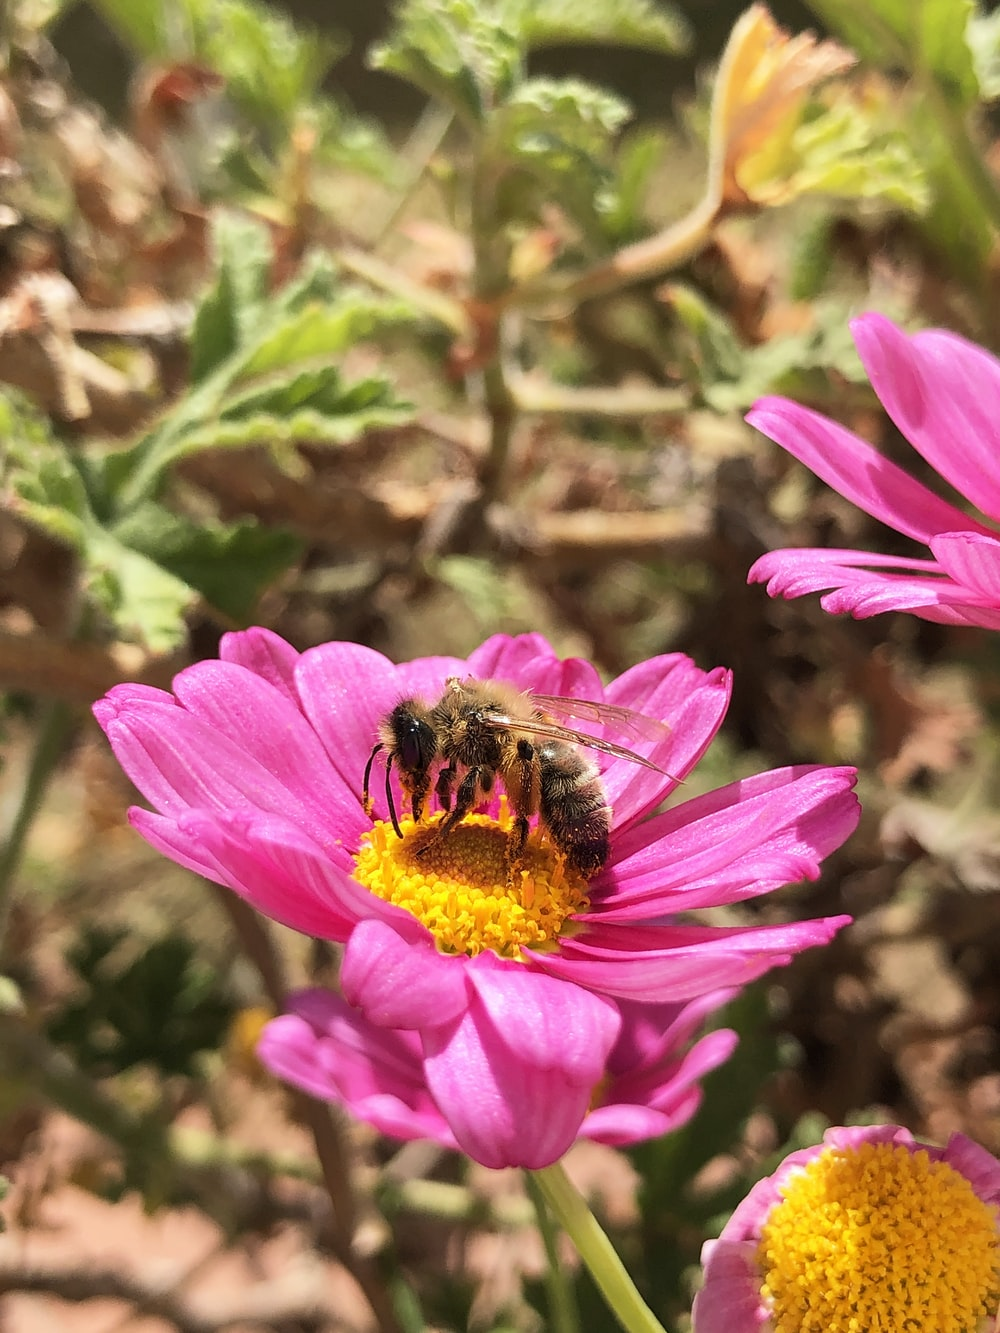 black and yellow bee on pink flower during daytime